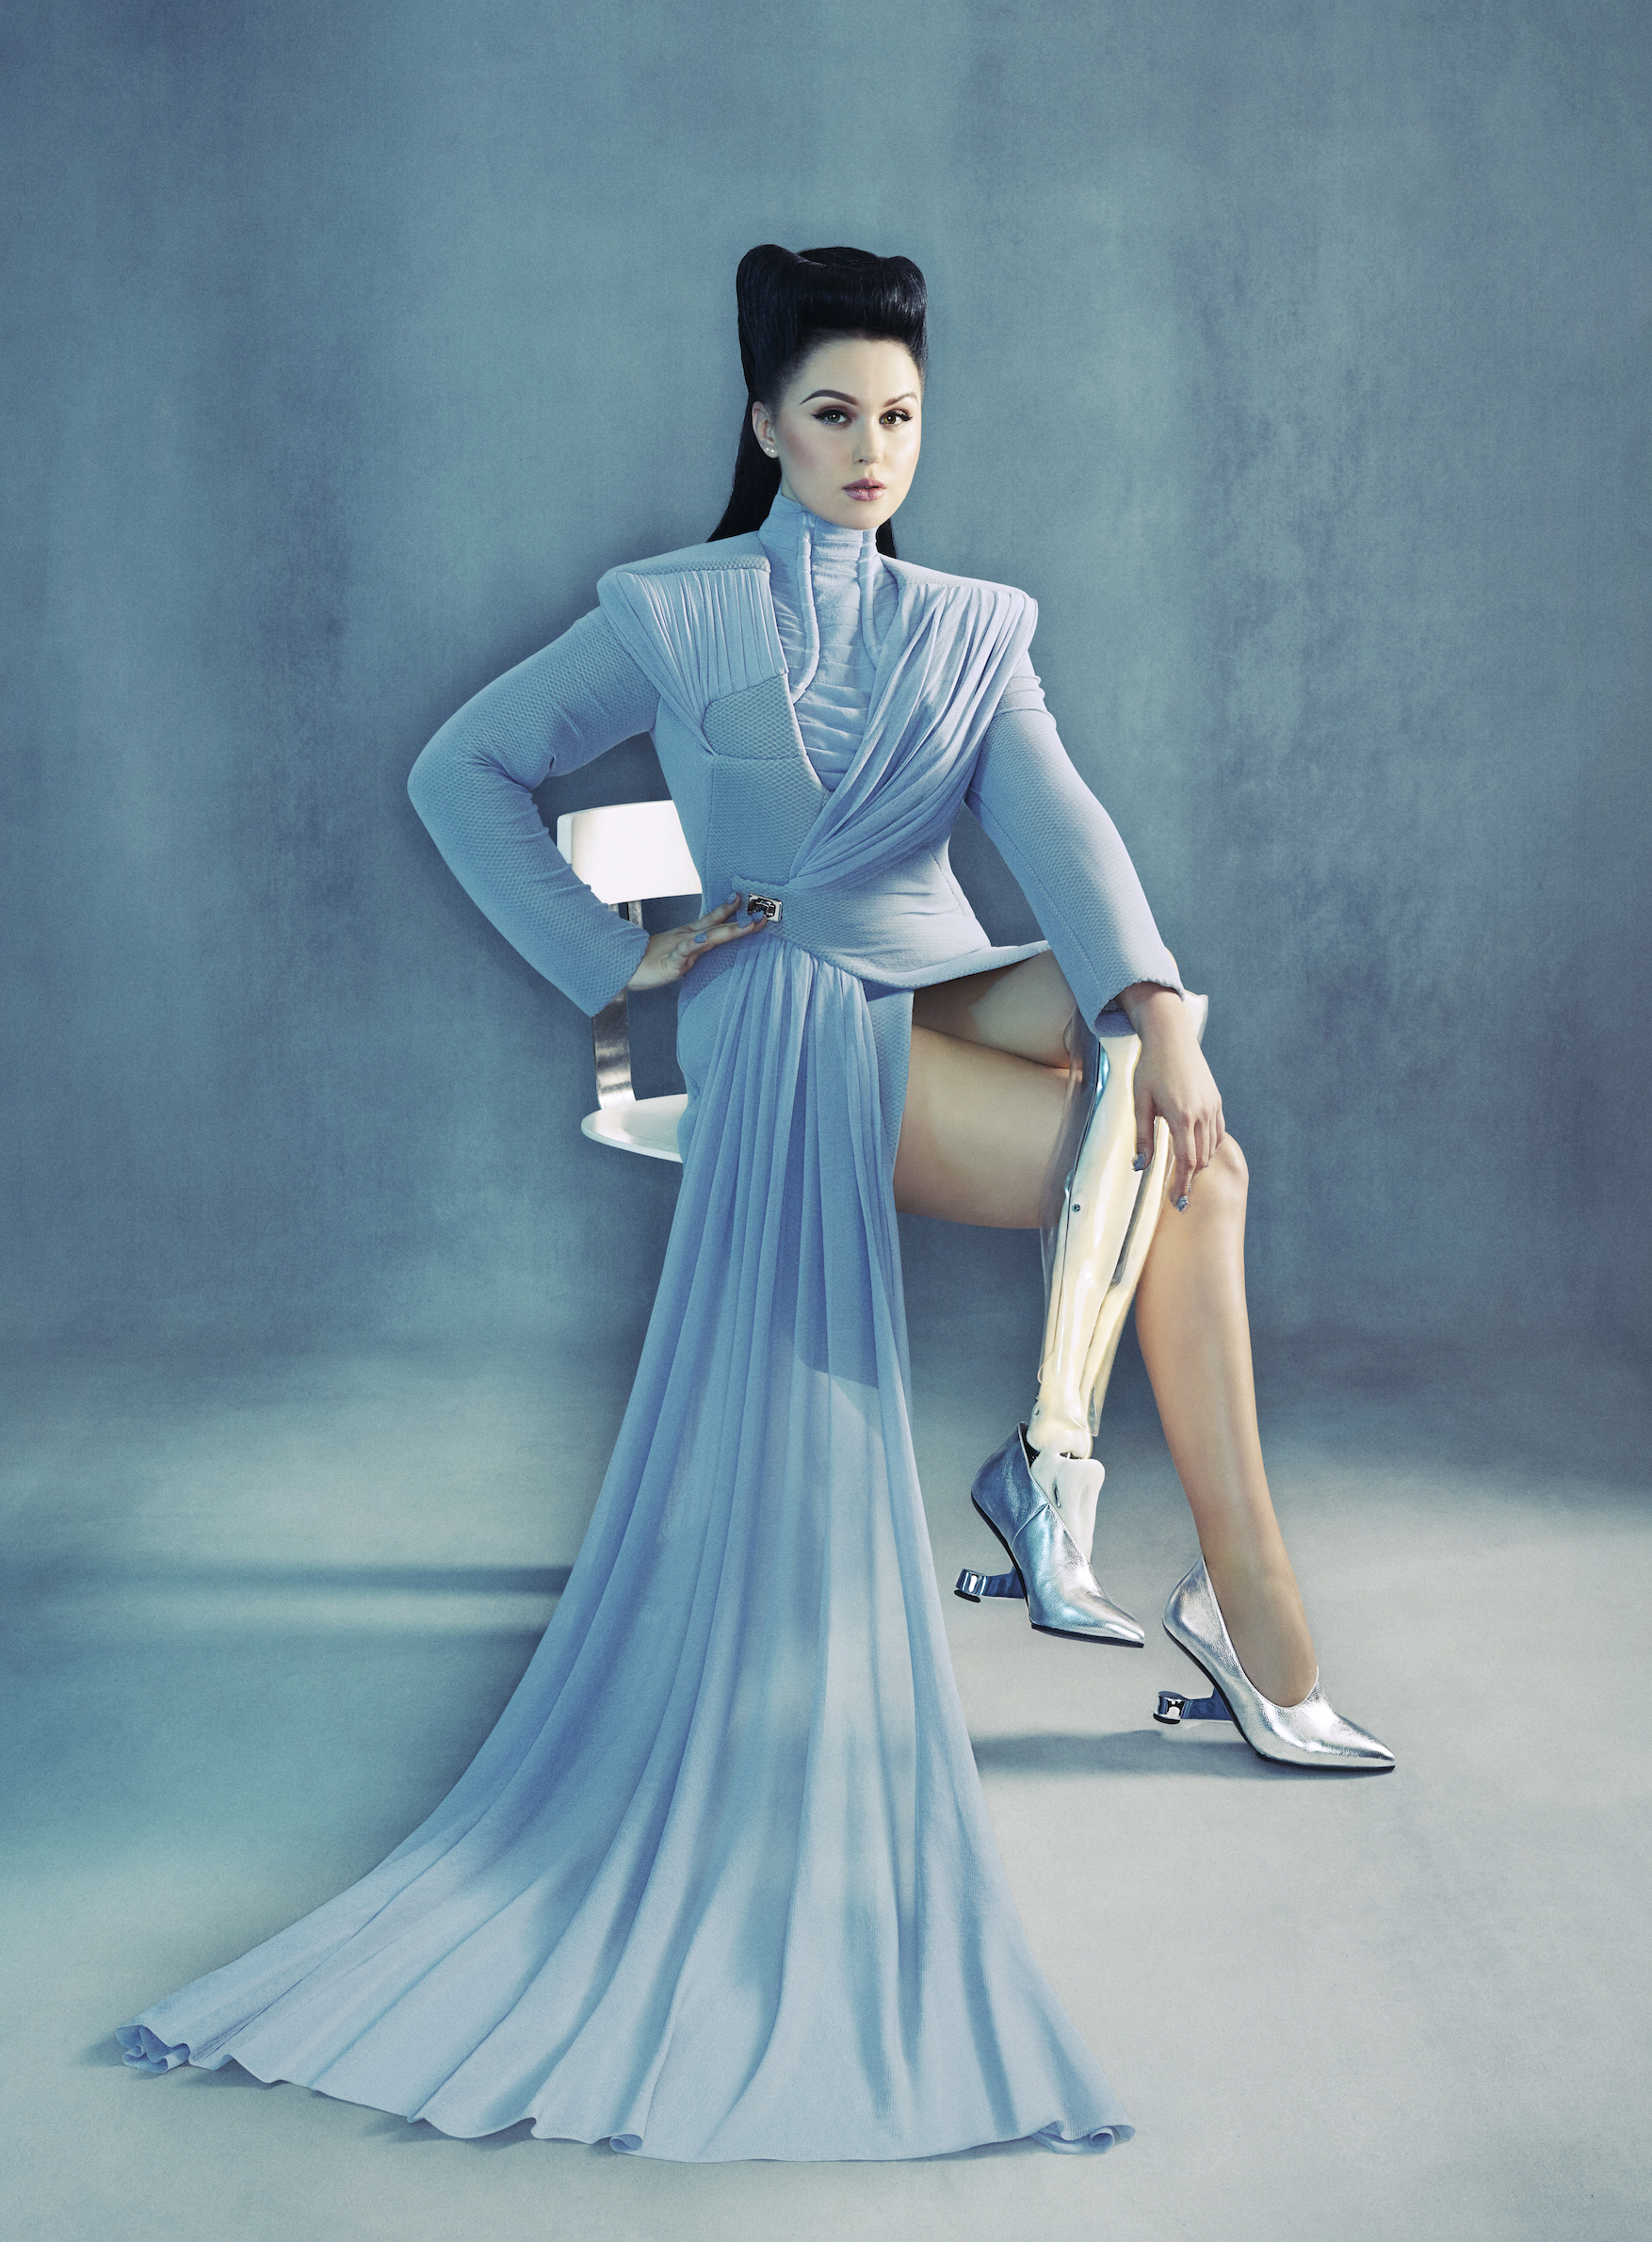 WIRED_Viktoria Modesta copy 2.jpg